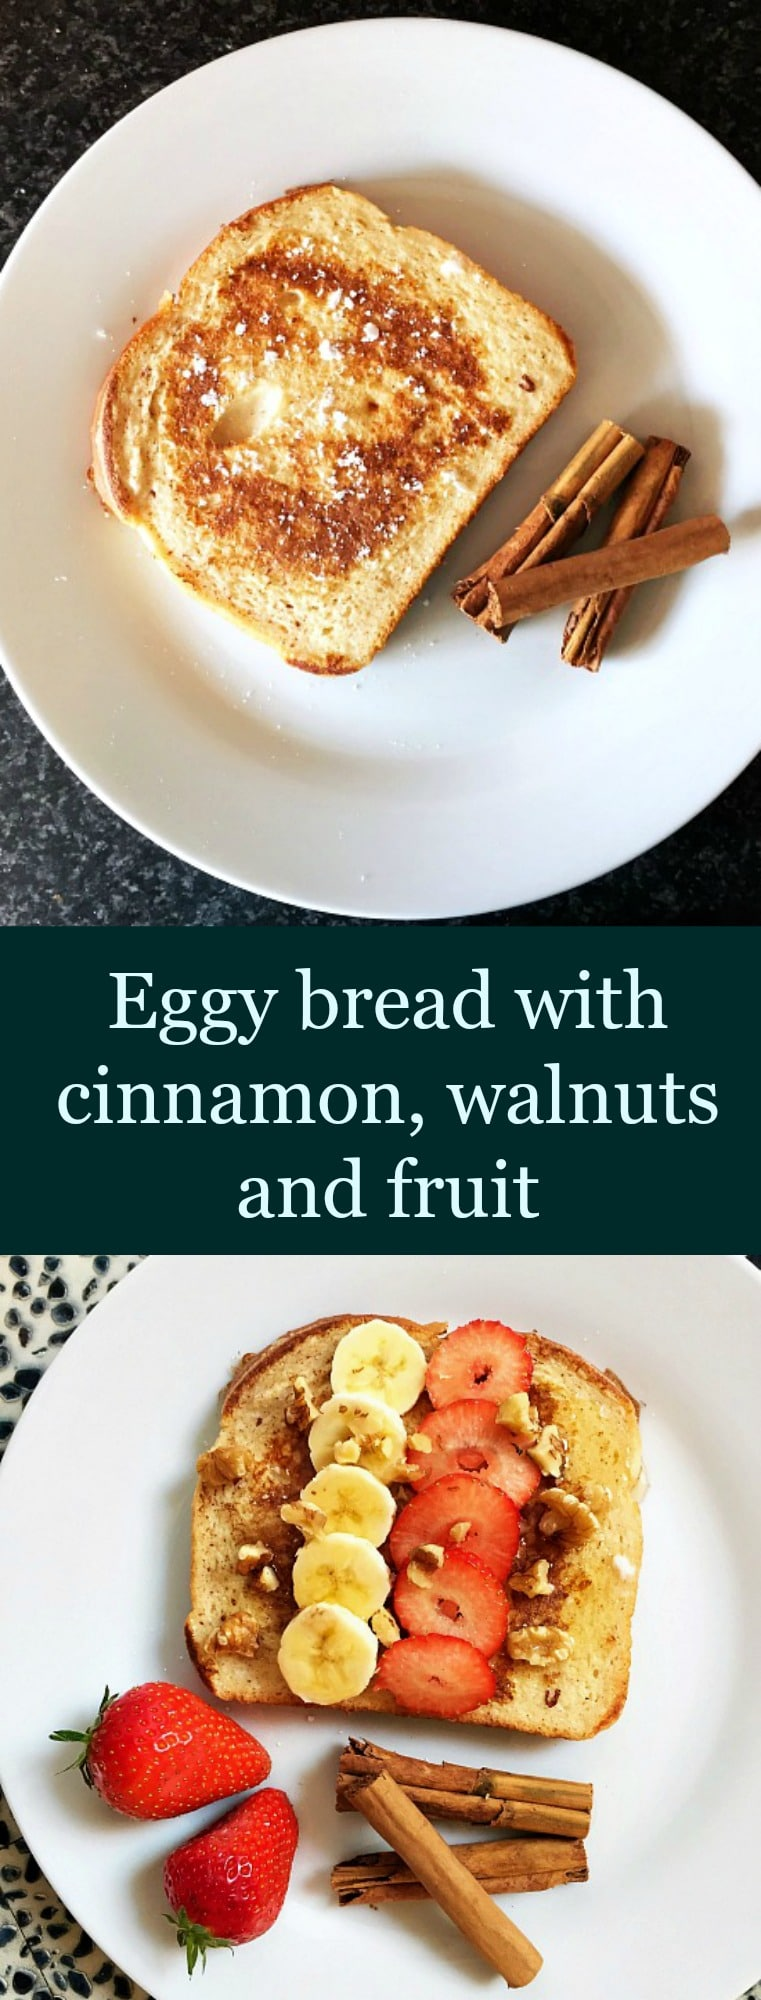 Eggy bread with cinnamon, walnuts and fruit